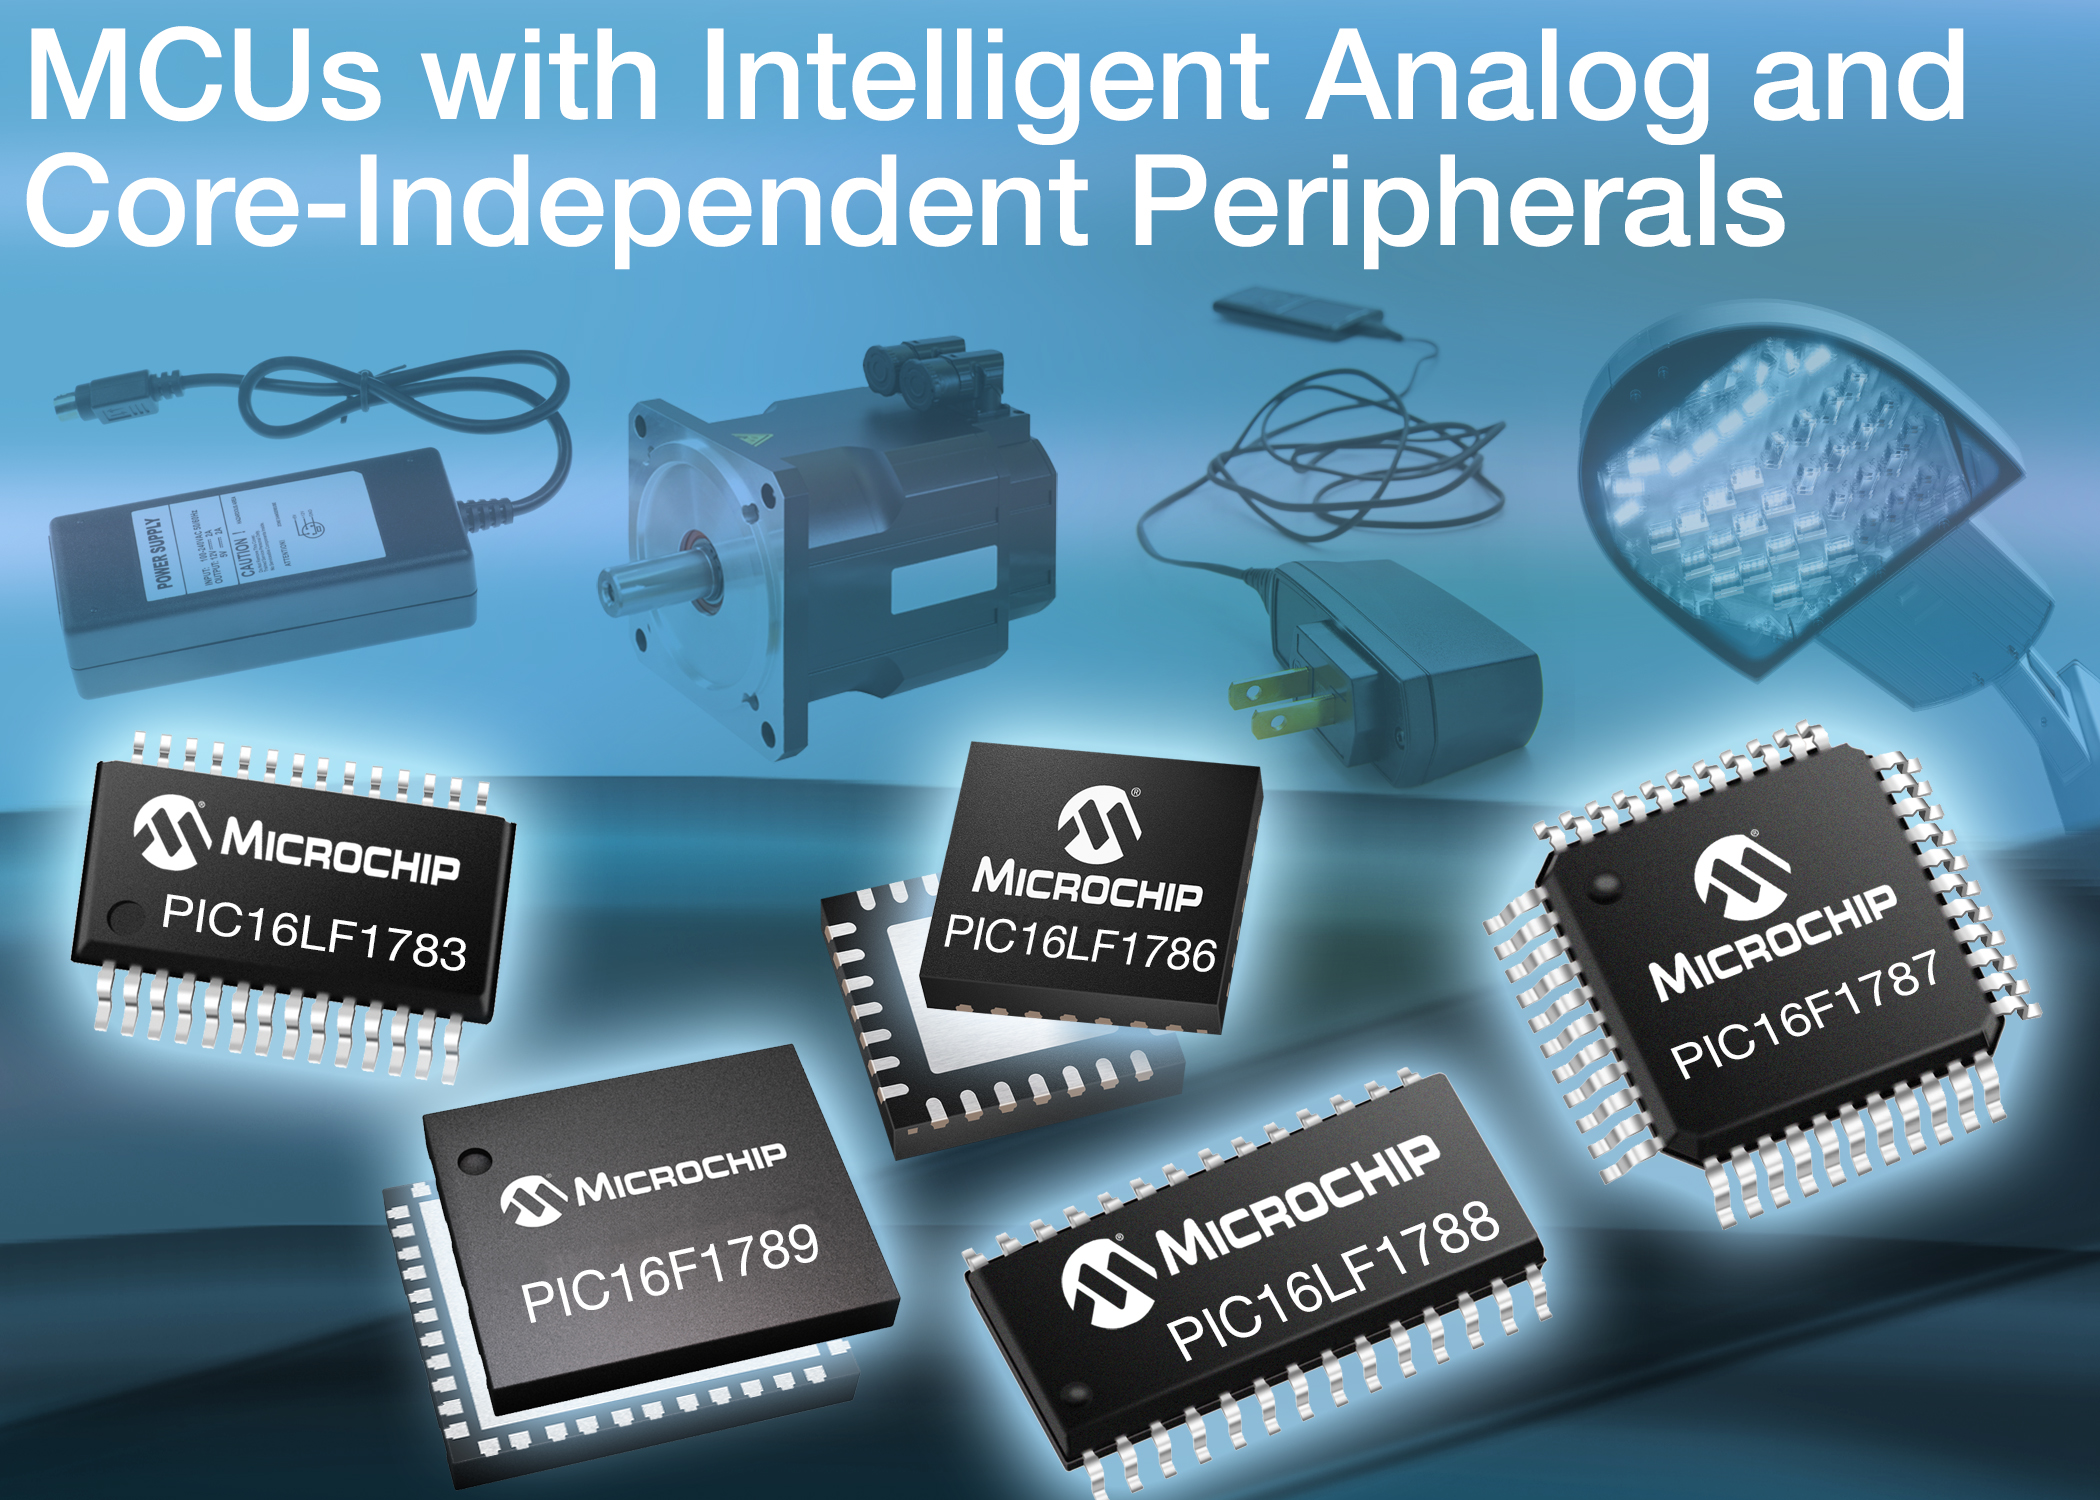 Microcontroller family with intelligent analogue integration